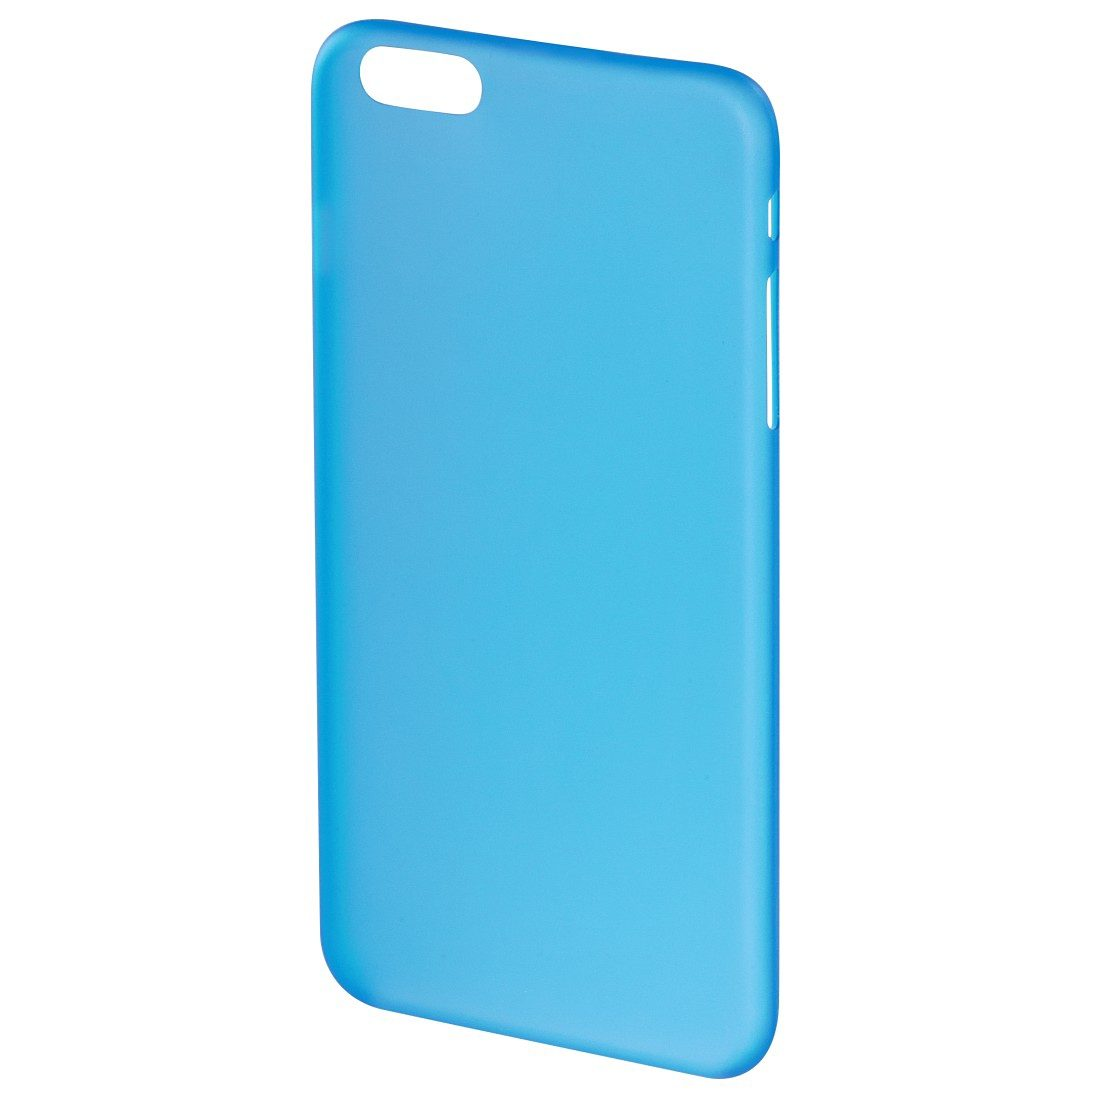 Hama Cover Ultra Slim für Apple iPhone 6/6s, Blau